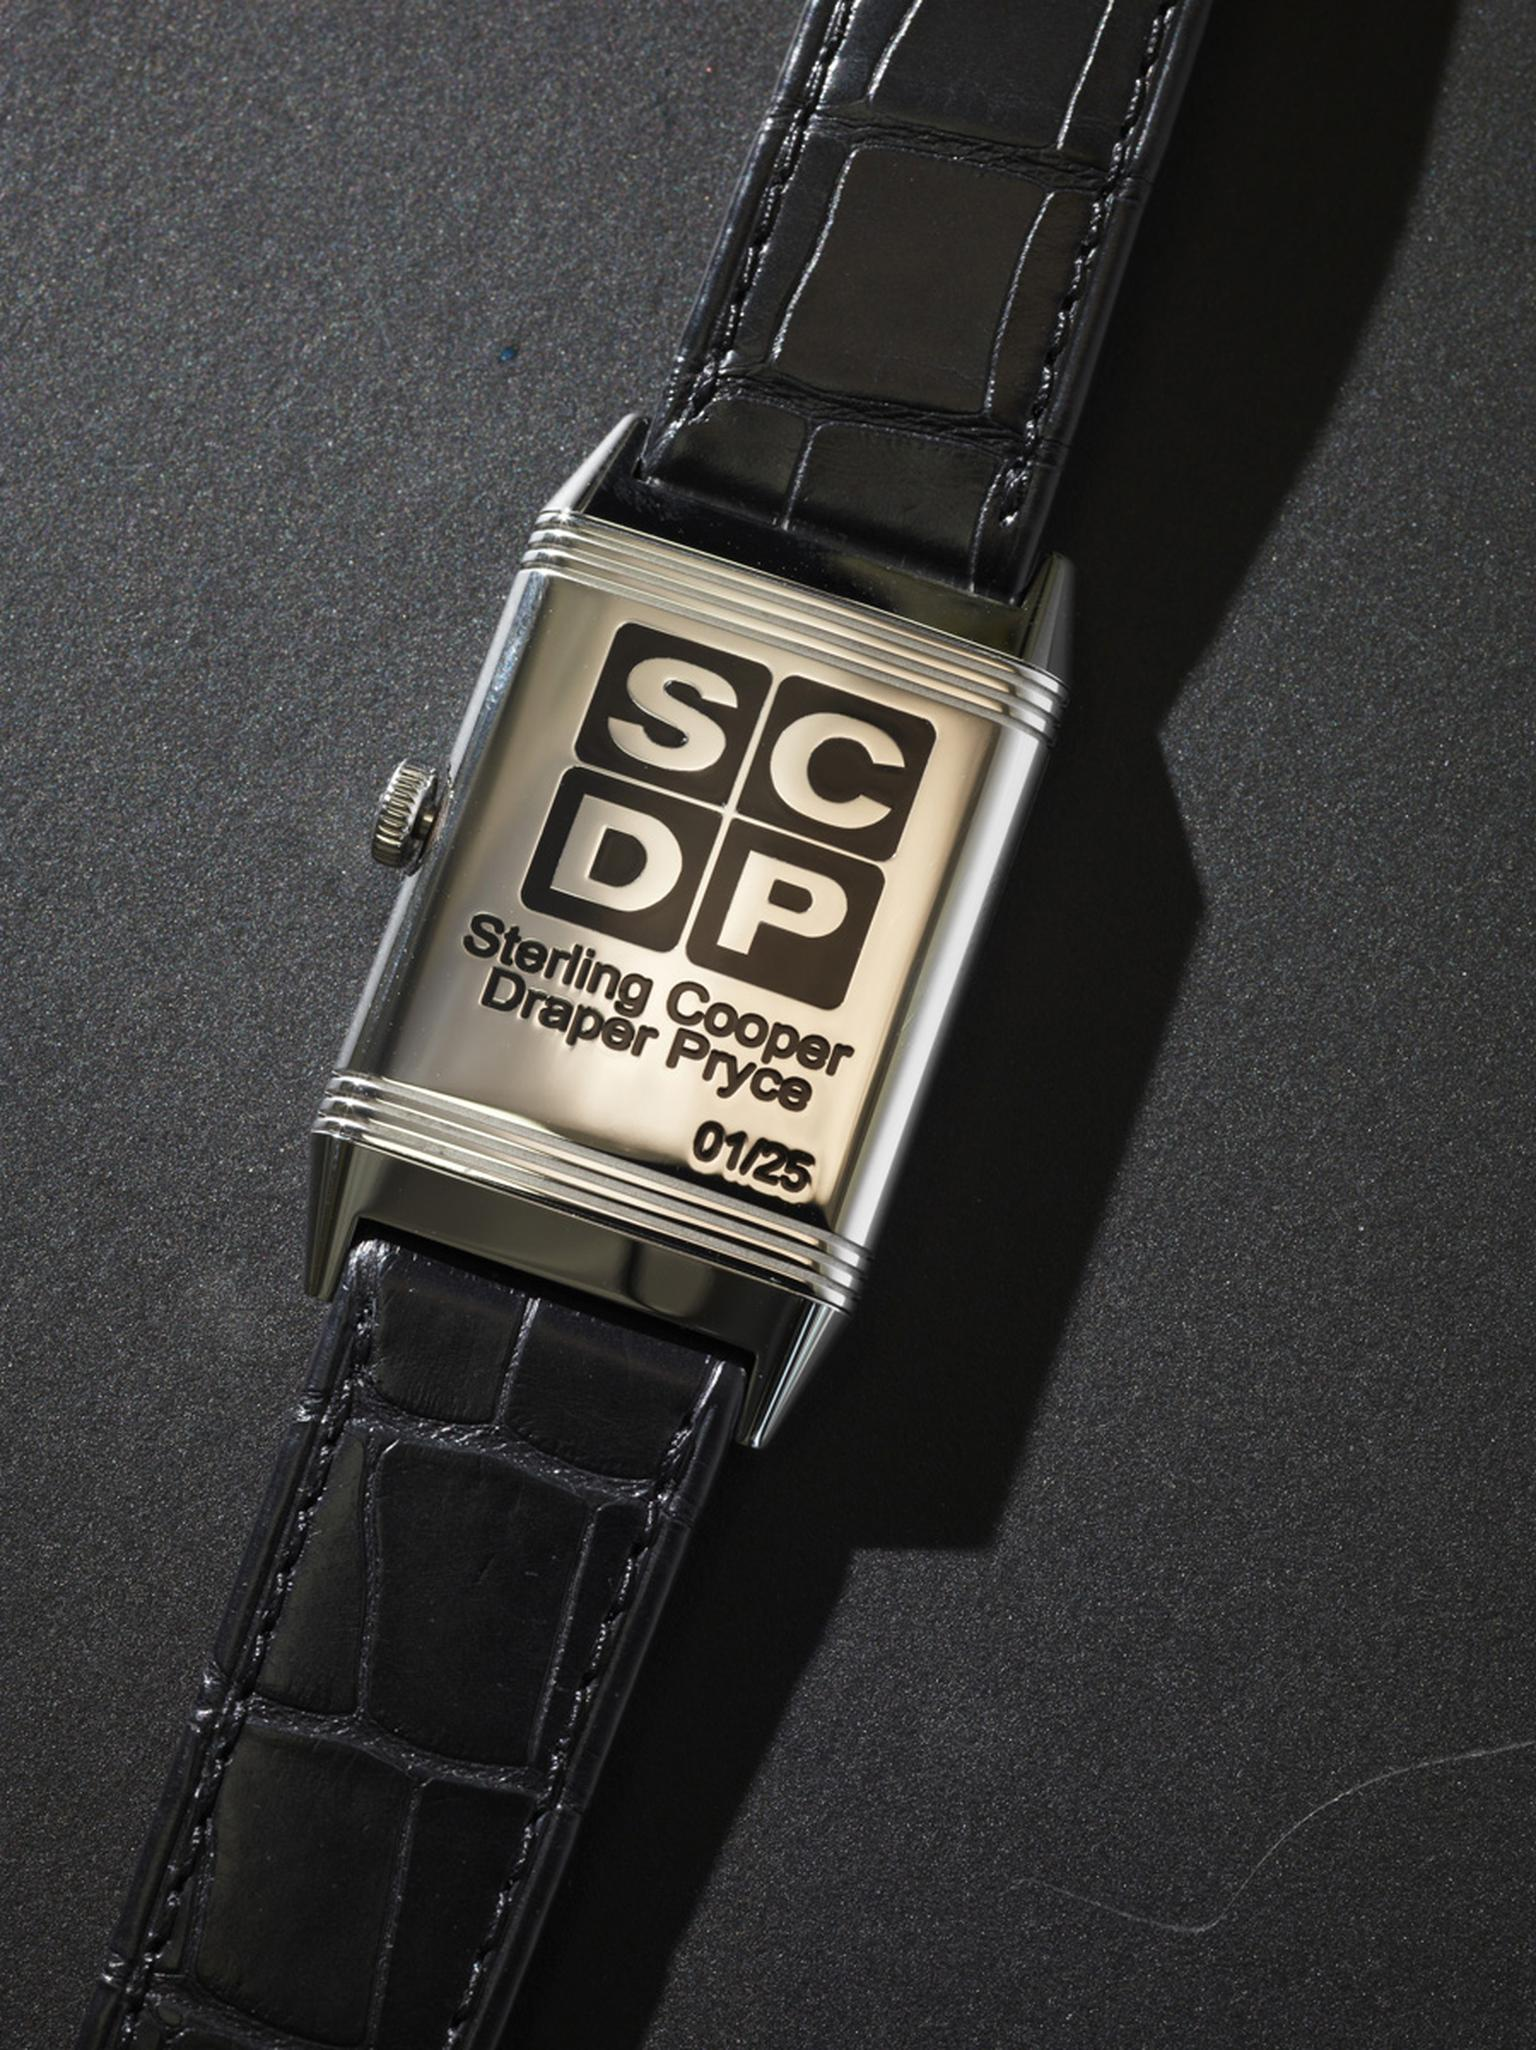 Jaeger-LeCoultre Mad Men 6